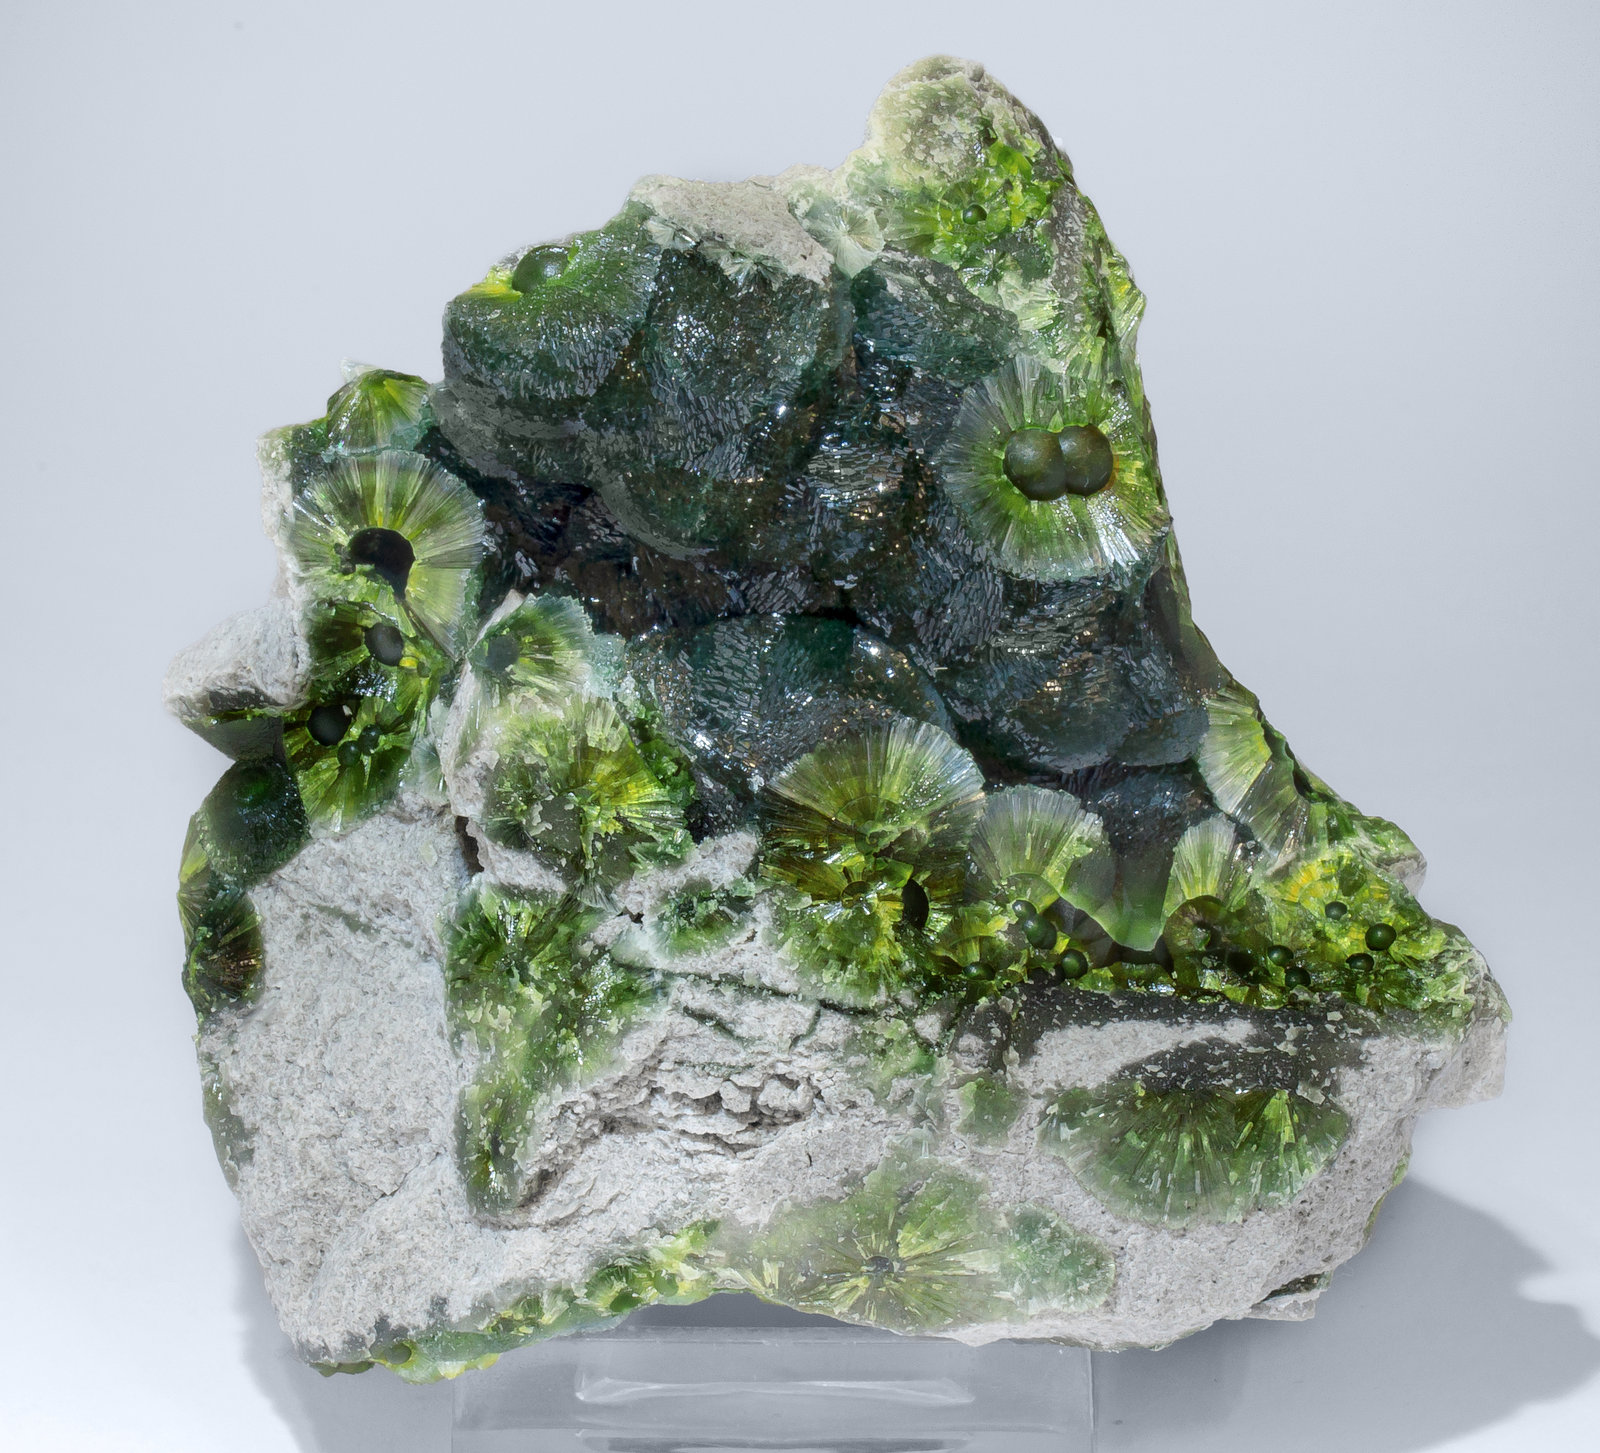 specimens/s_imagesAM2/Wavellite-HM87AM2f.jpg